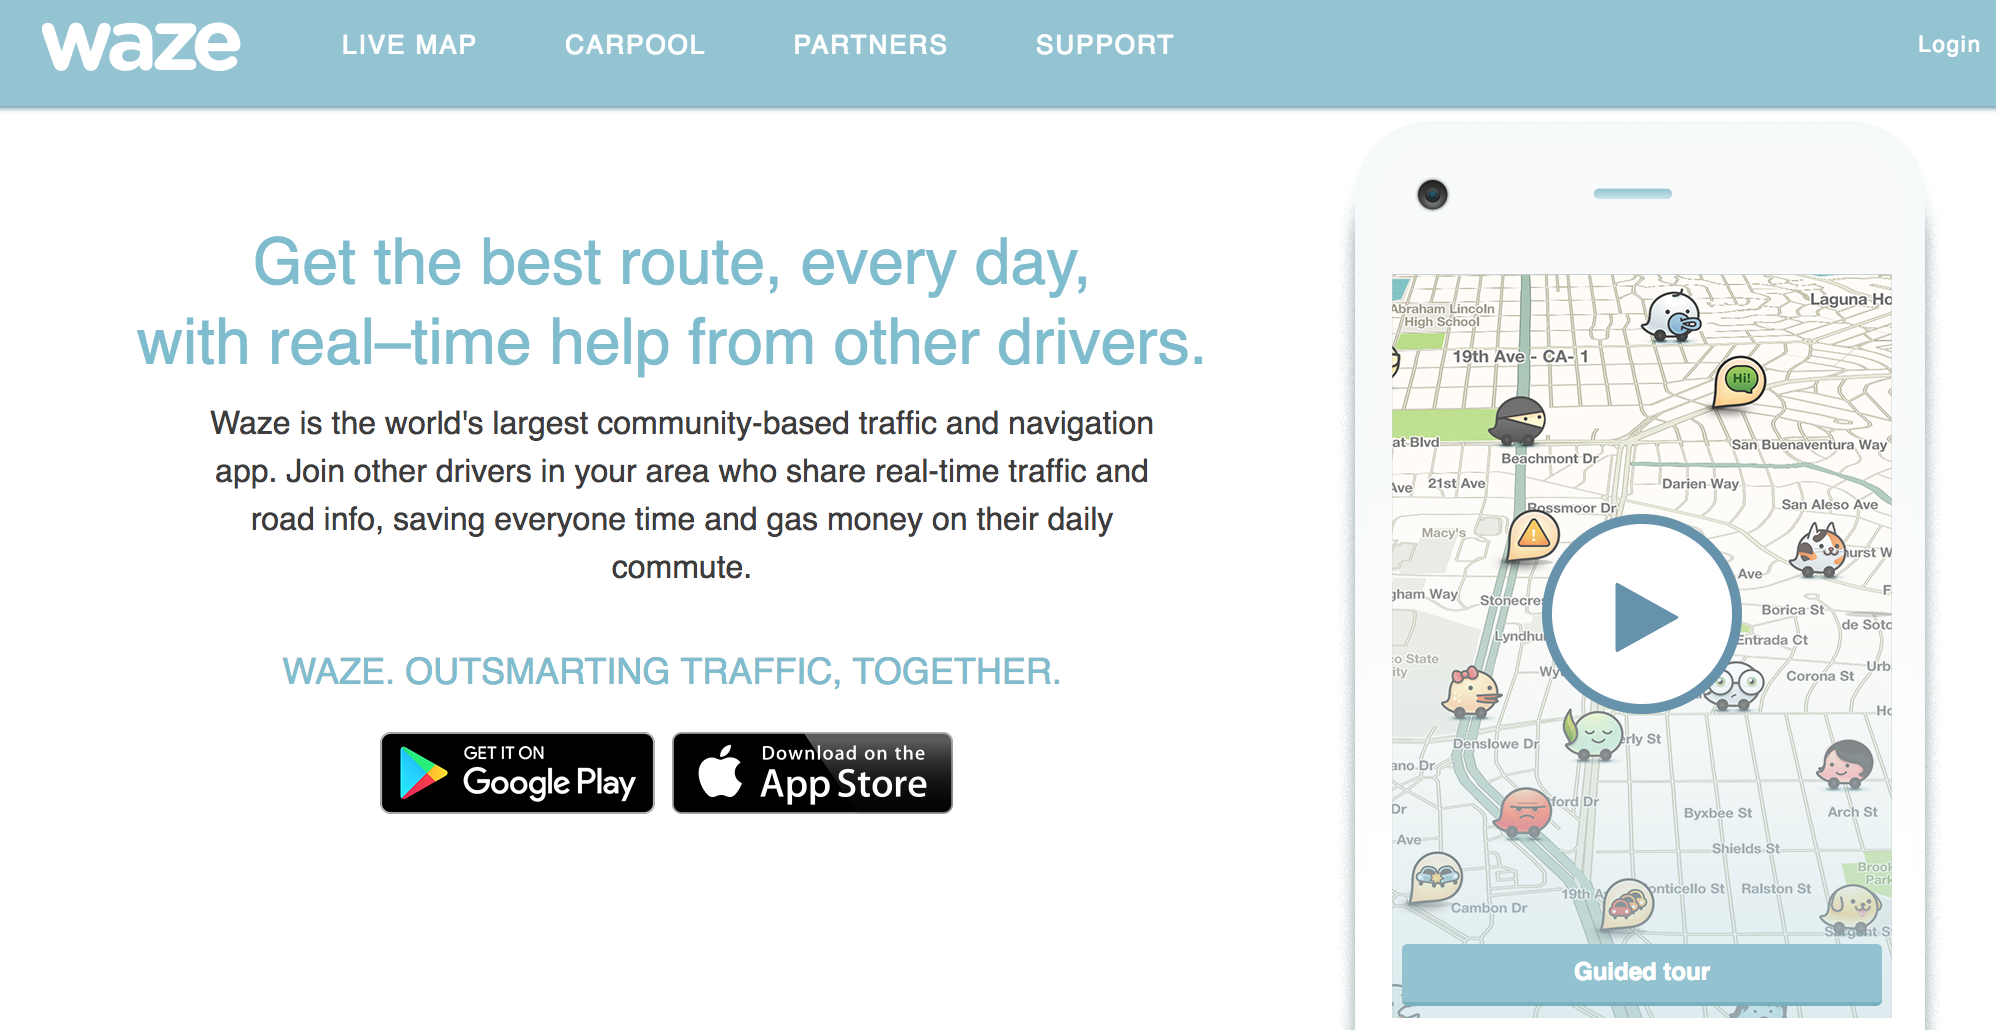 Allstate Targets Millions of Wazers